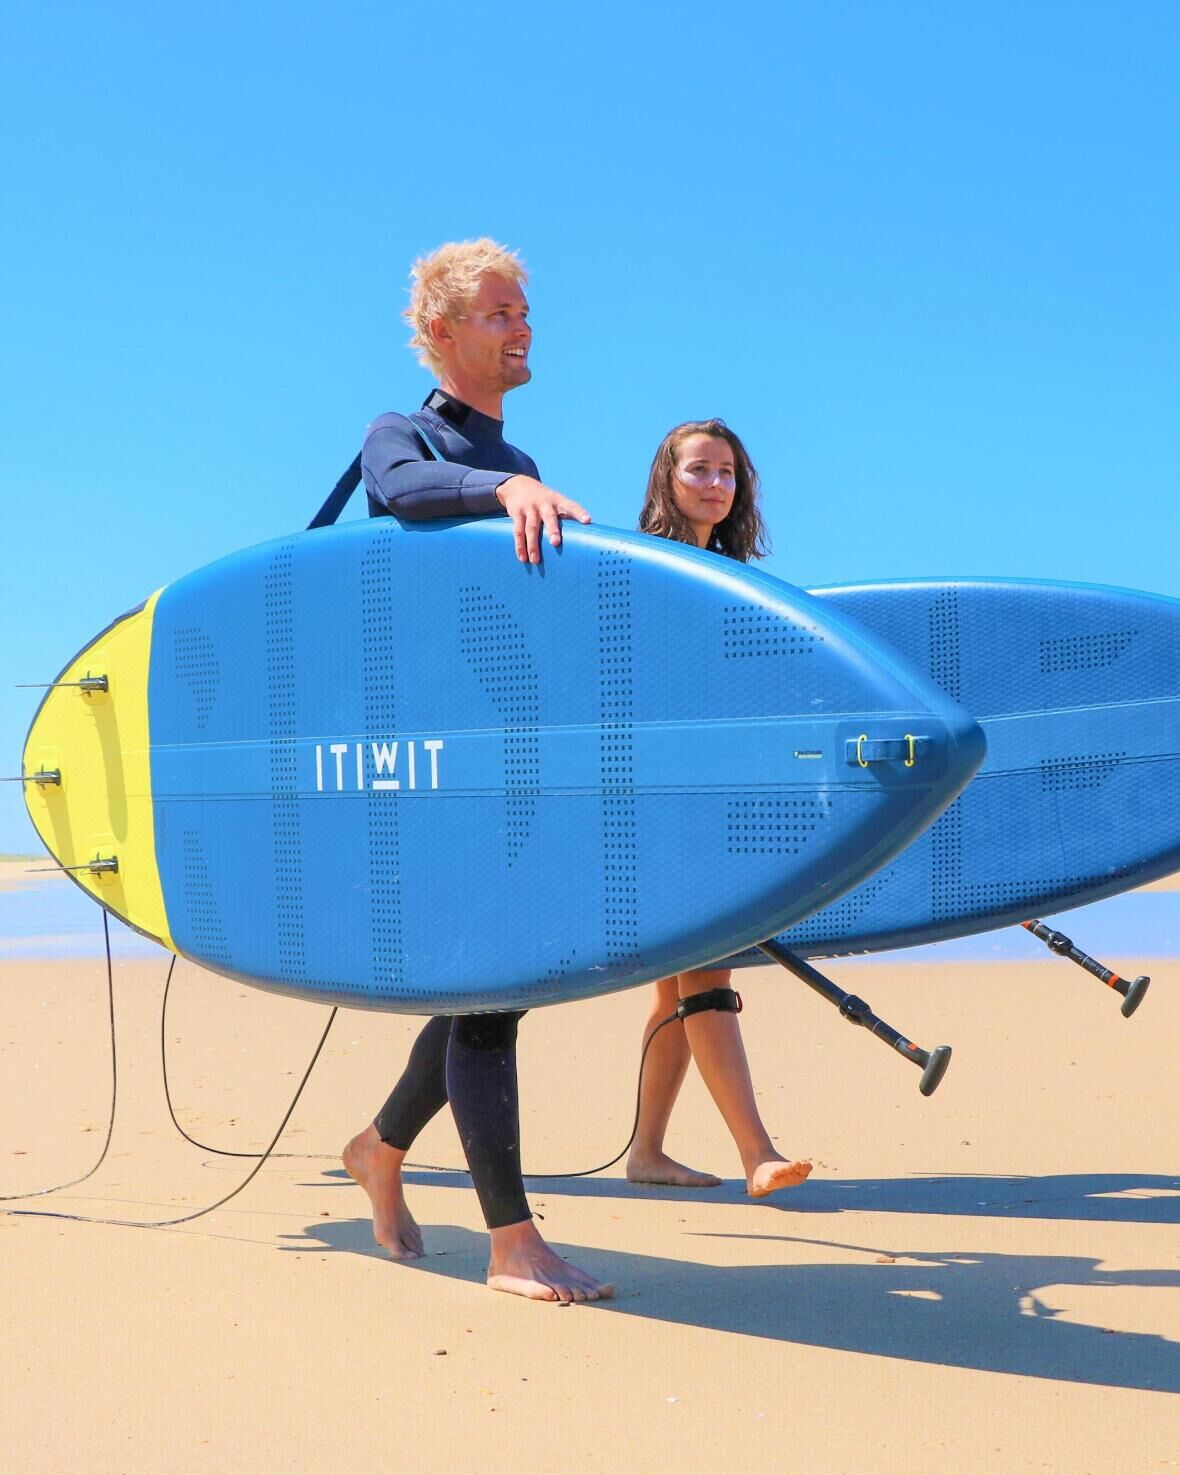 surf sup gonflable